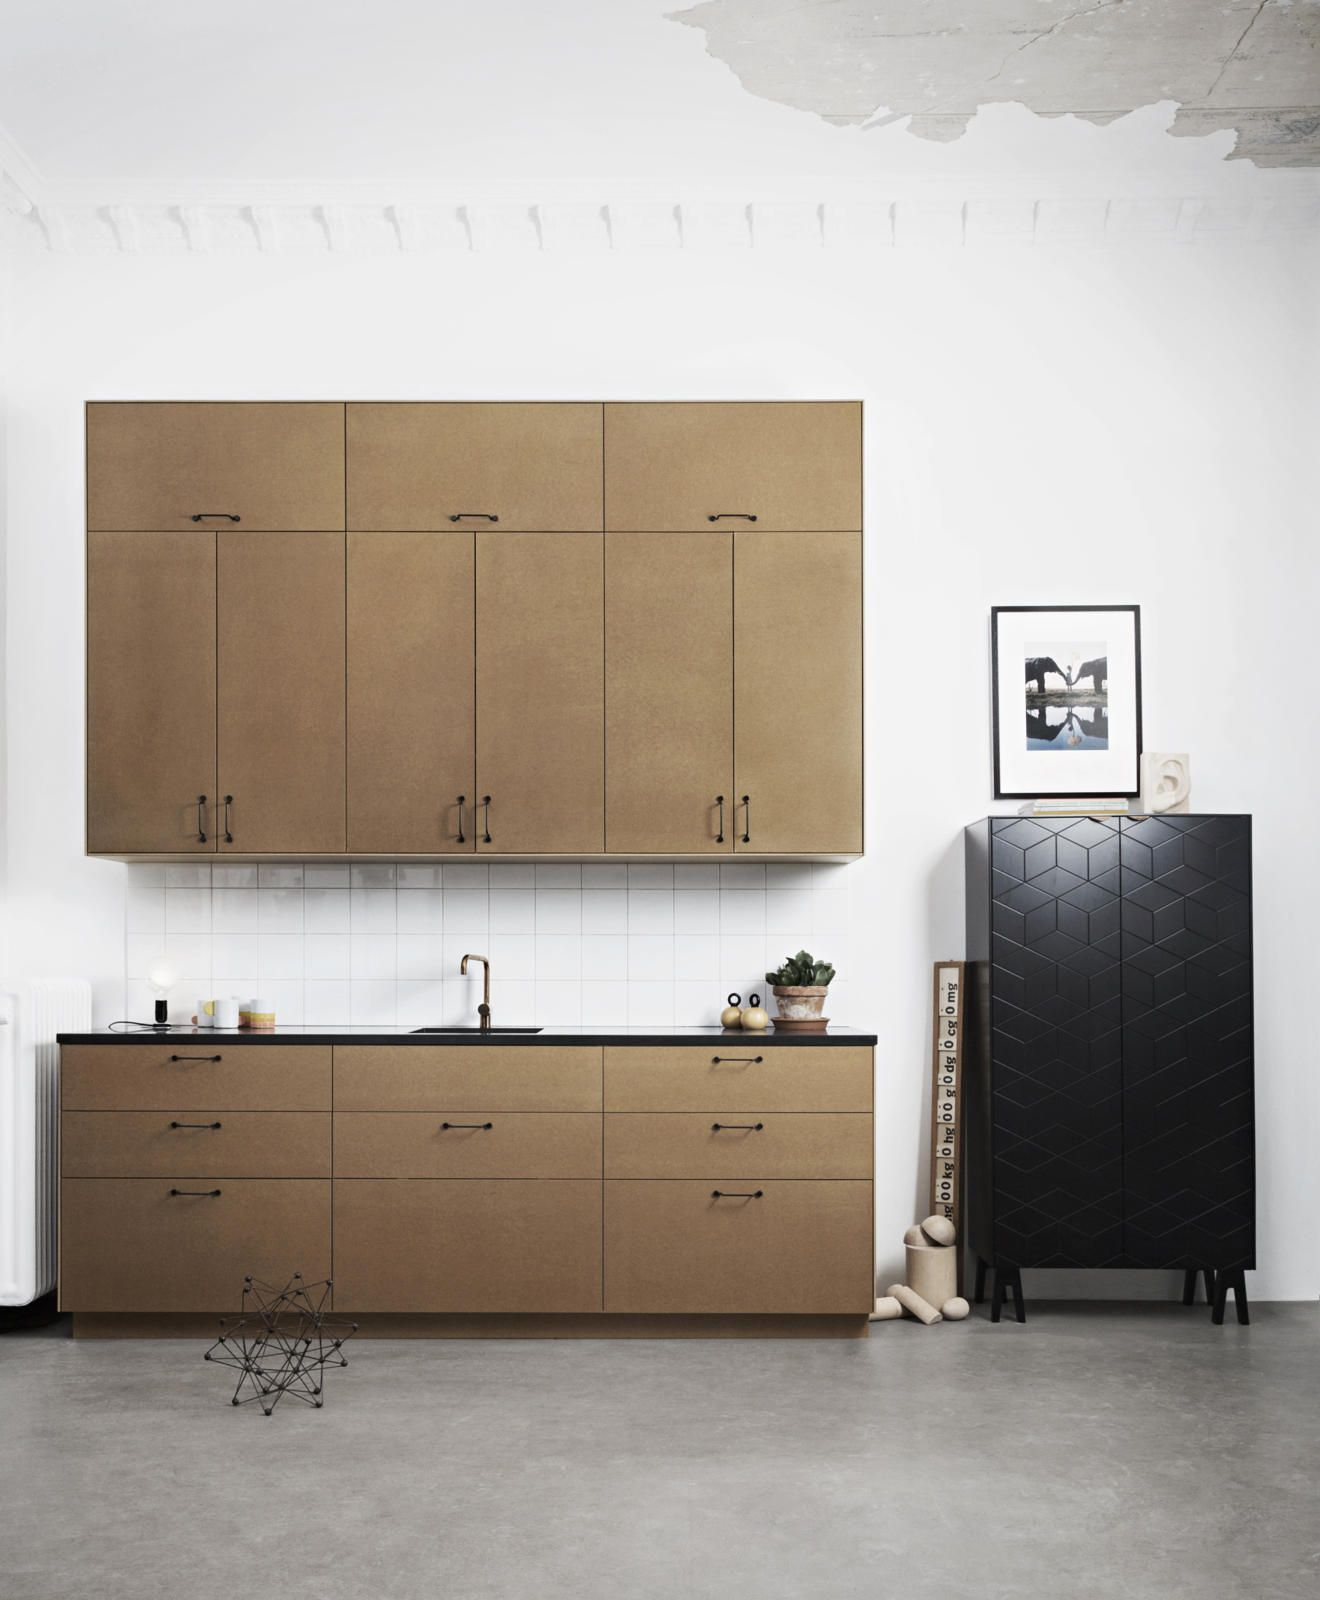 Zwarte Spoelbak Ikea Kitchen Inspiration From Superfront Condo Remodel In 2019